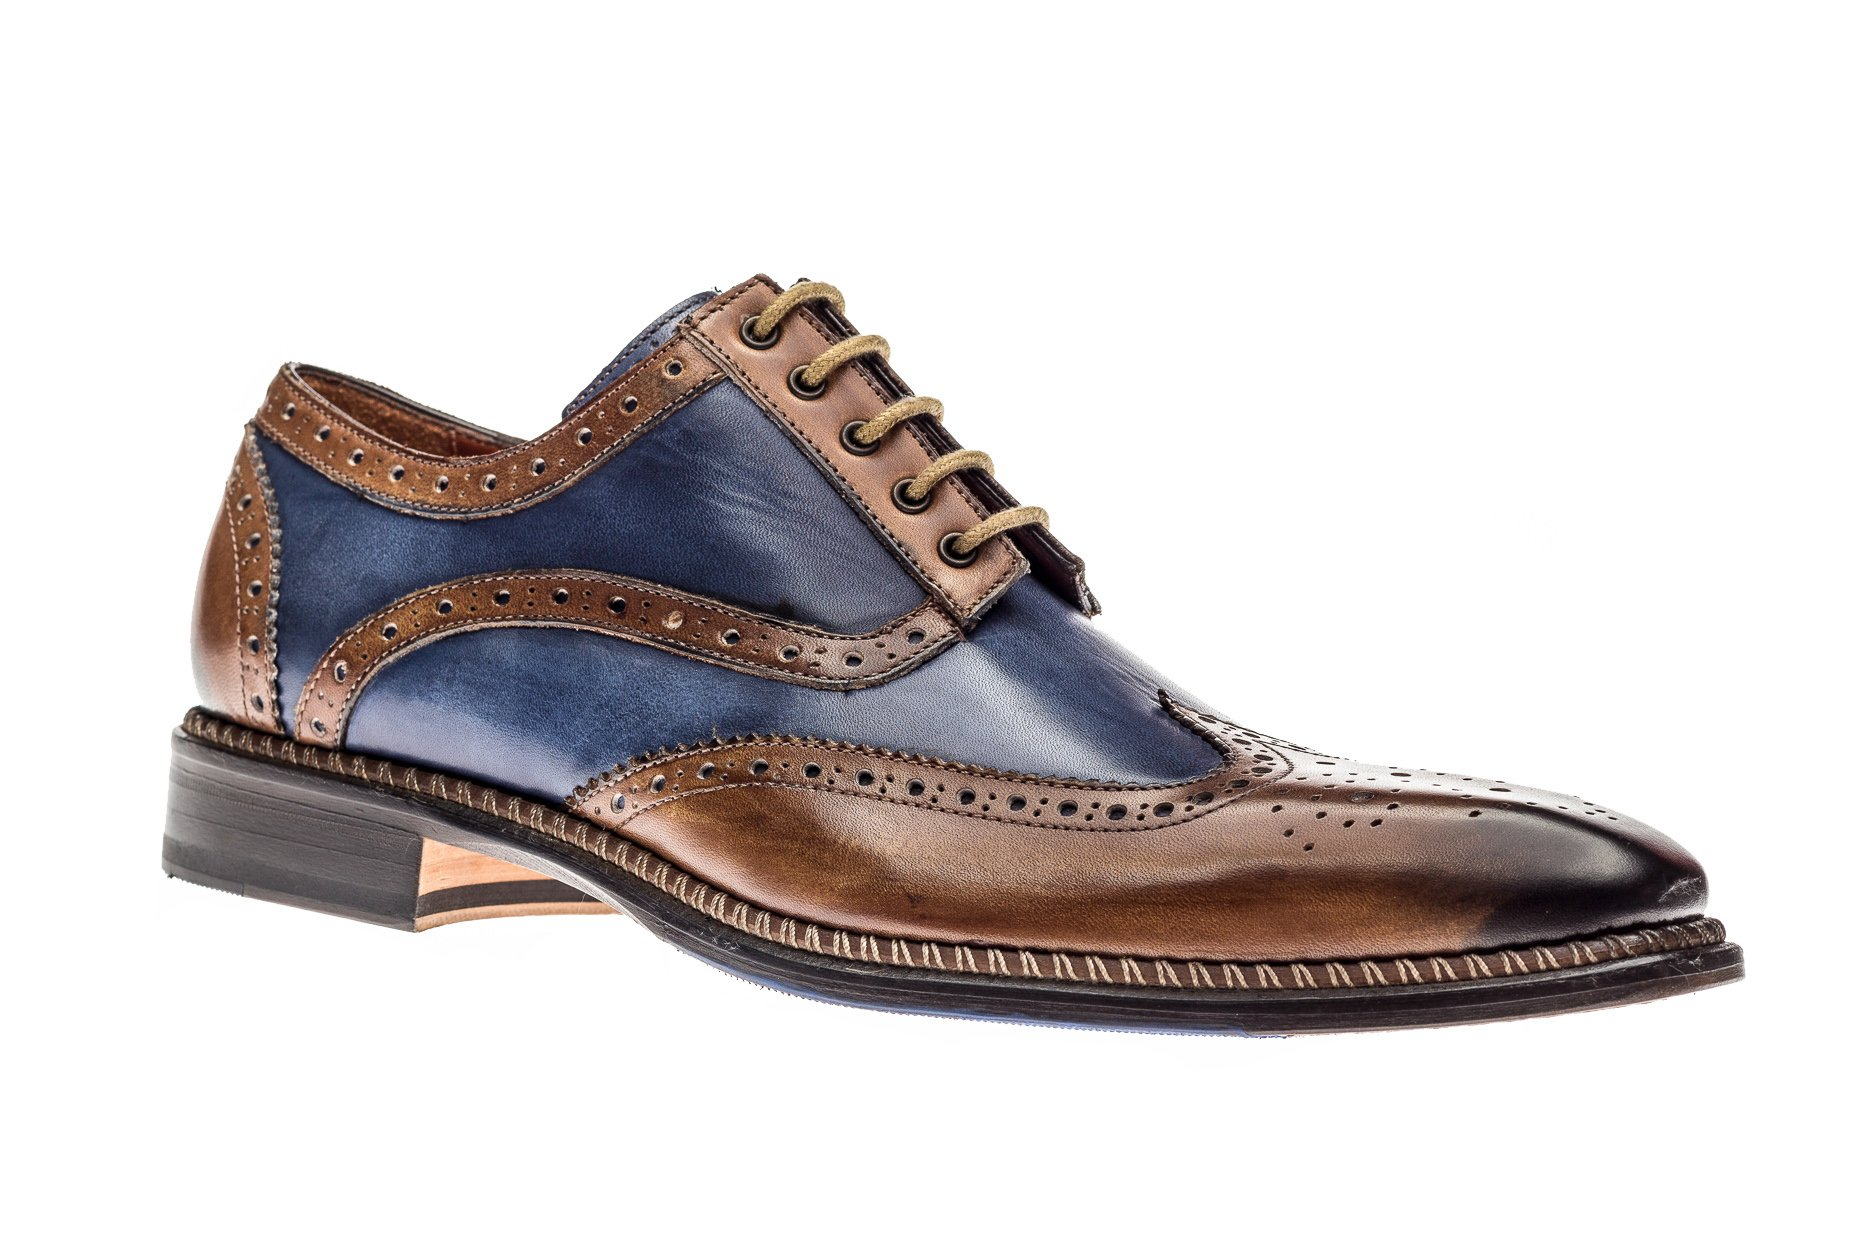 Jose Real Shoes Veloce Collection | Mens Oxford Brown and Blue Genuine Real Italian Leather Dress Shoe | Size EU 43